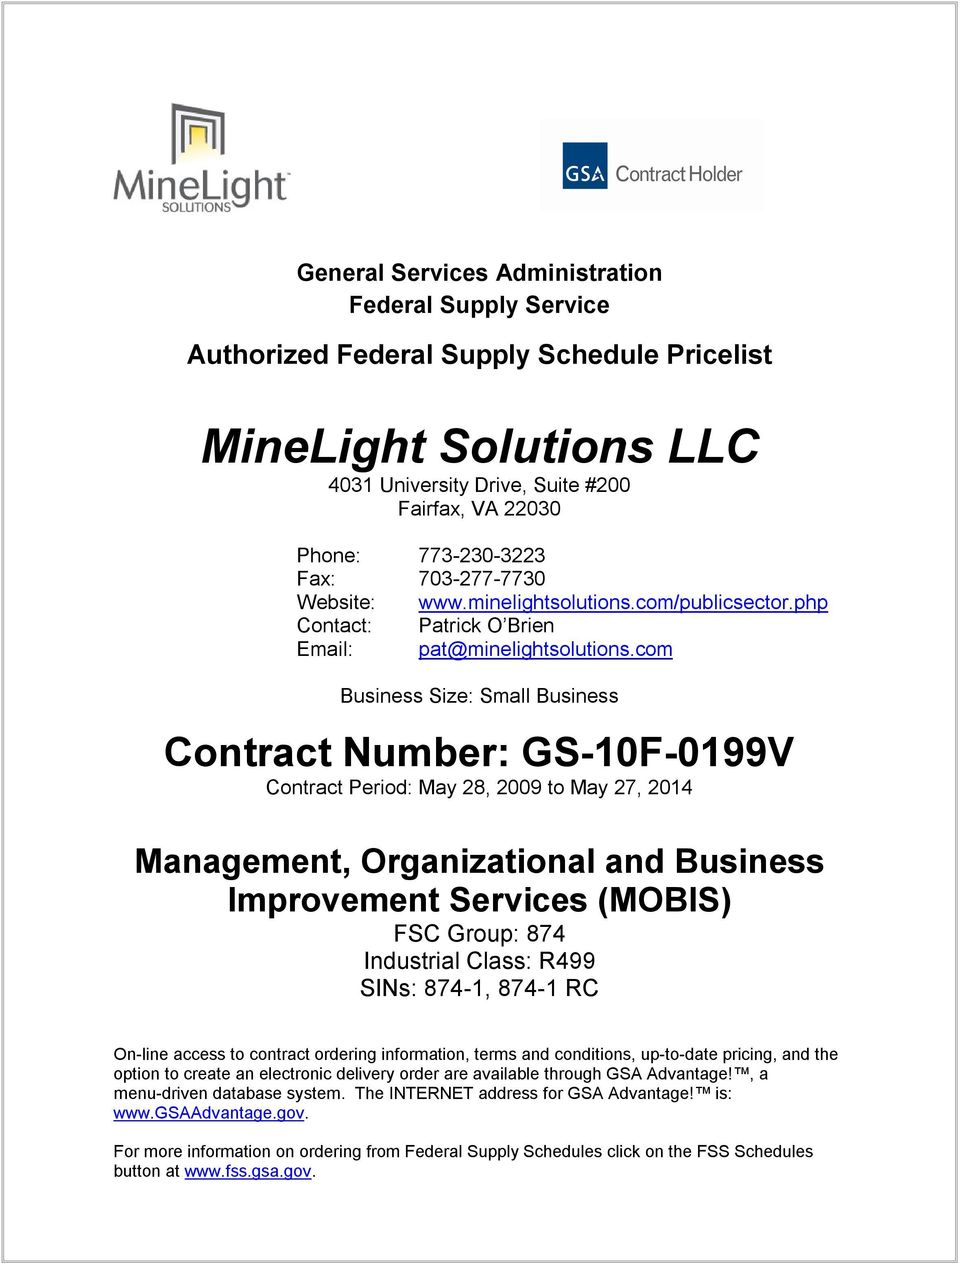 com Business Size: Small Business Contract Number: GS-10F-0199V Contract Period: May 28, 2009 to May 27, 2014 Management, Organizational and Business Improvement Services (MOBIS) FSC Group: 874